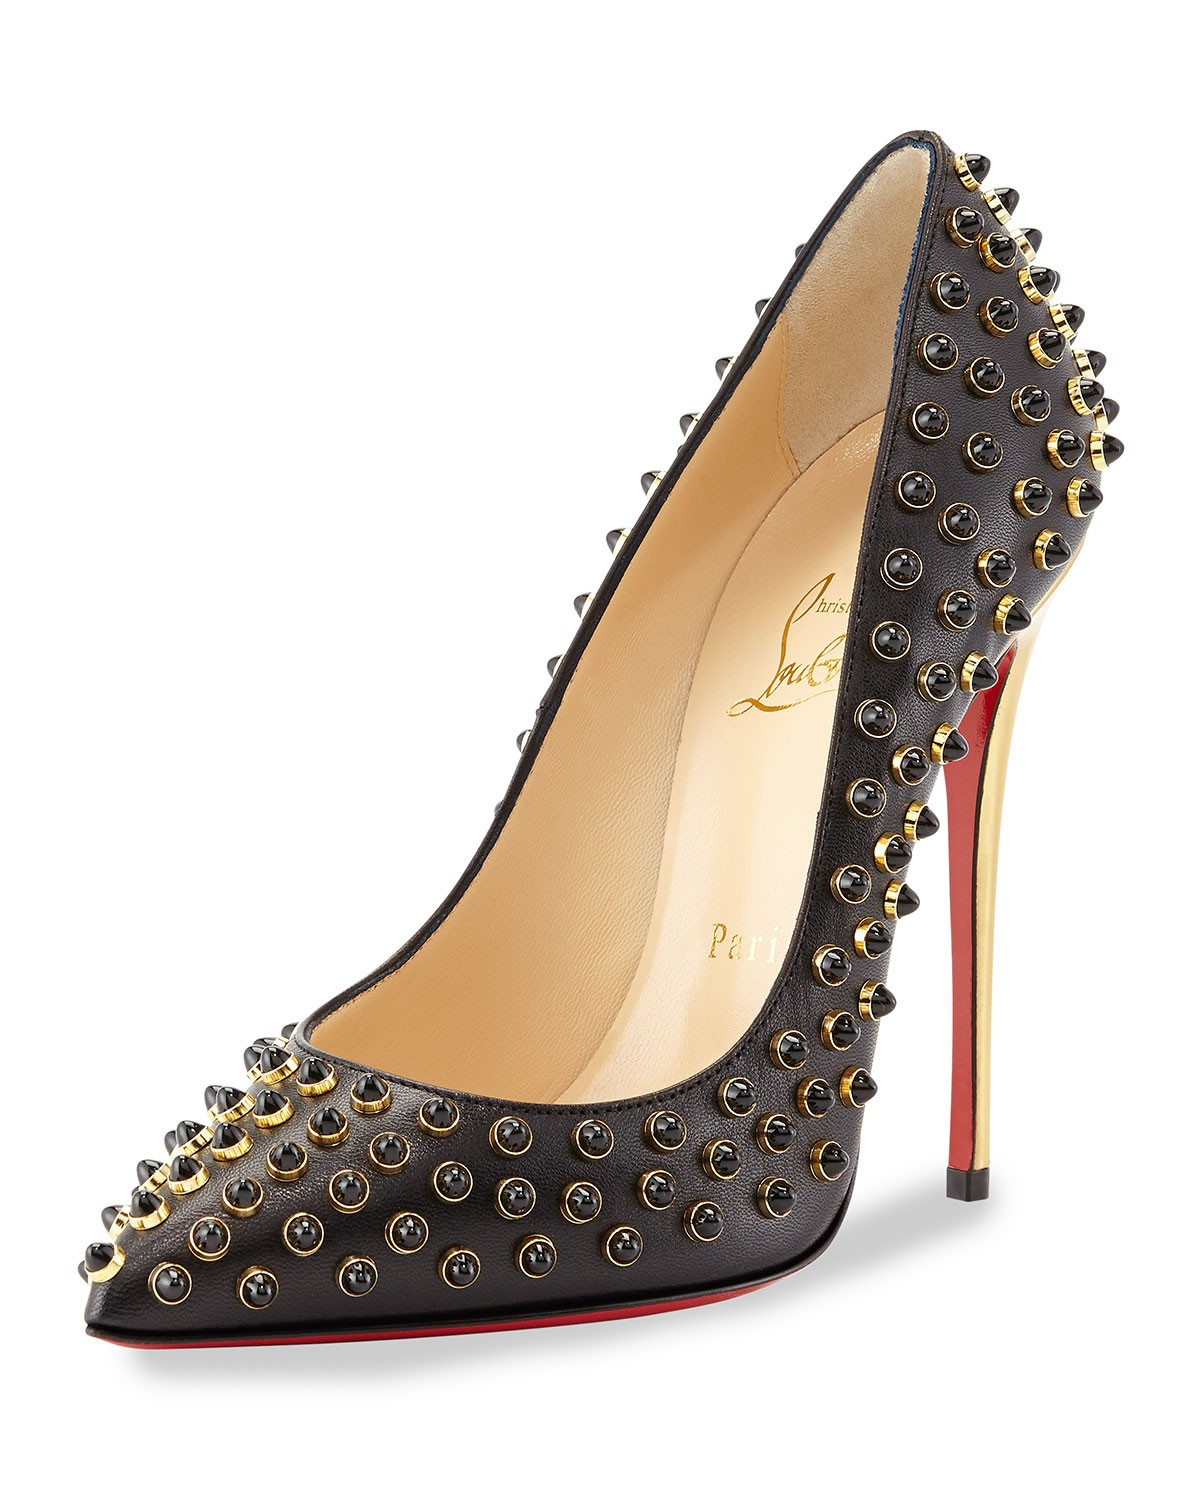 Follies Cabo Studded Red Sole Pump, Black - Christian Louboutin - Black (10 1/2B)